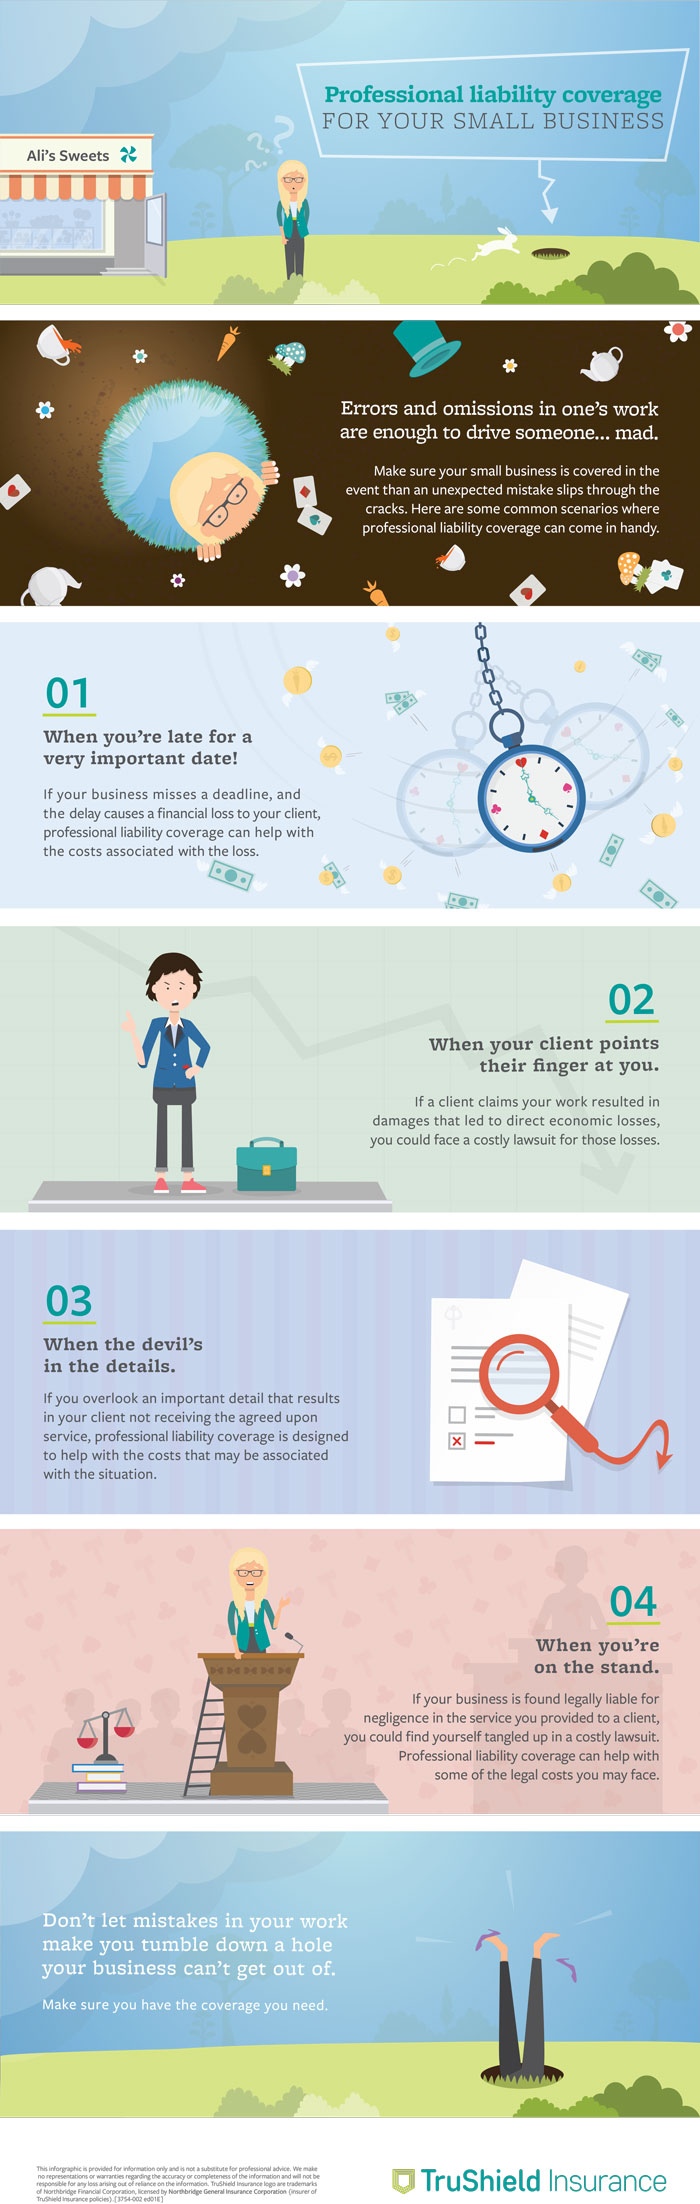 TruShield- Infographic on professional liability for your small business